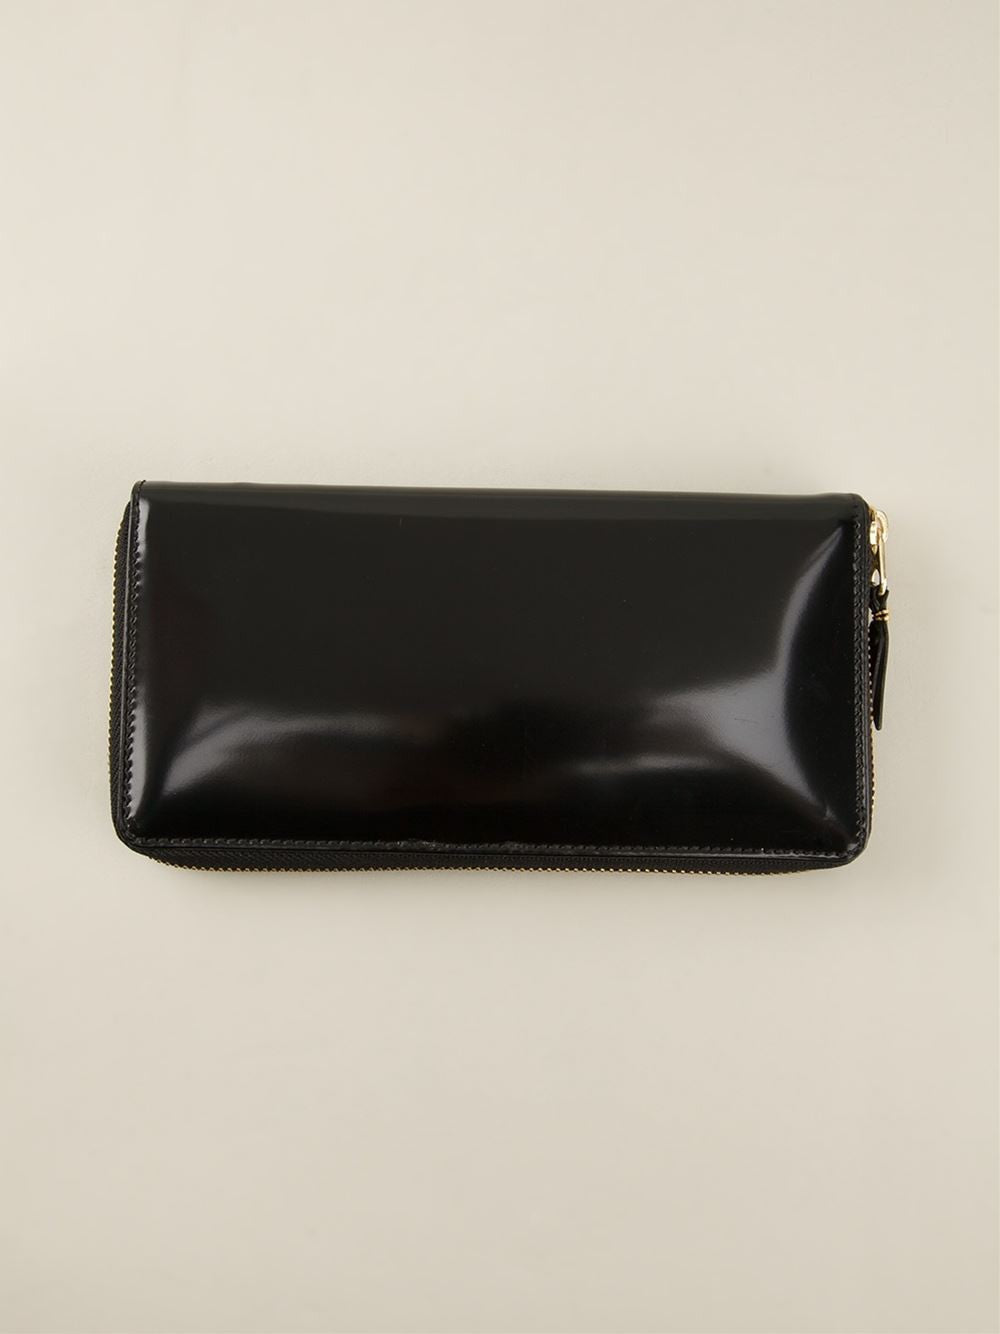 Patent Leather Pocketbook | SA0110 FL